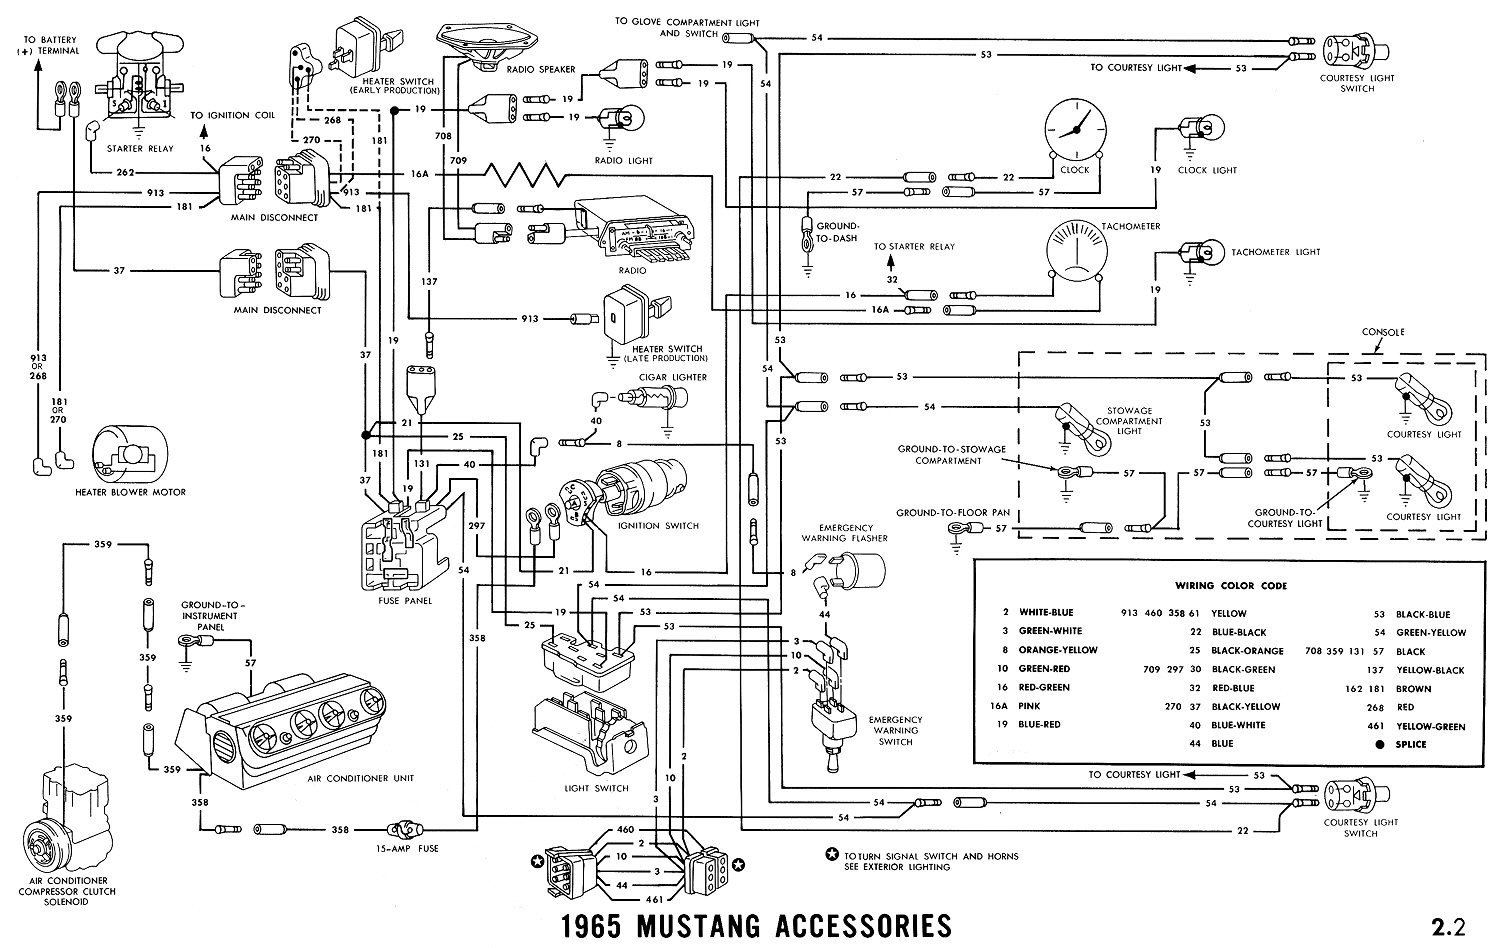 1965i 1965 mustang wiring diagrams average joe restoration 1967 mustang ignition wiring diagram at soozxer.org